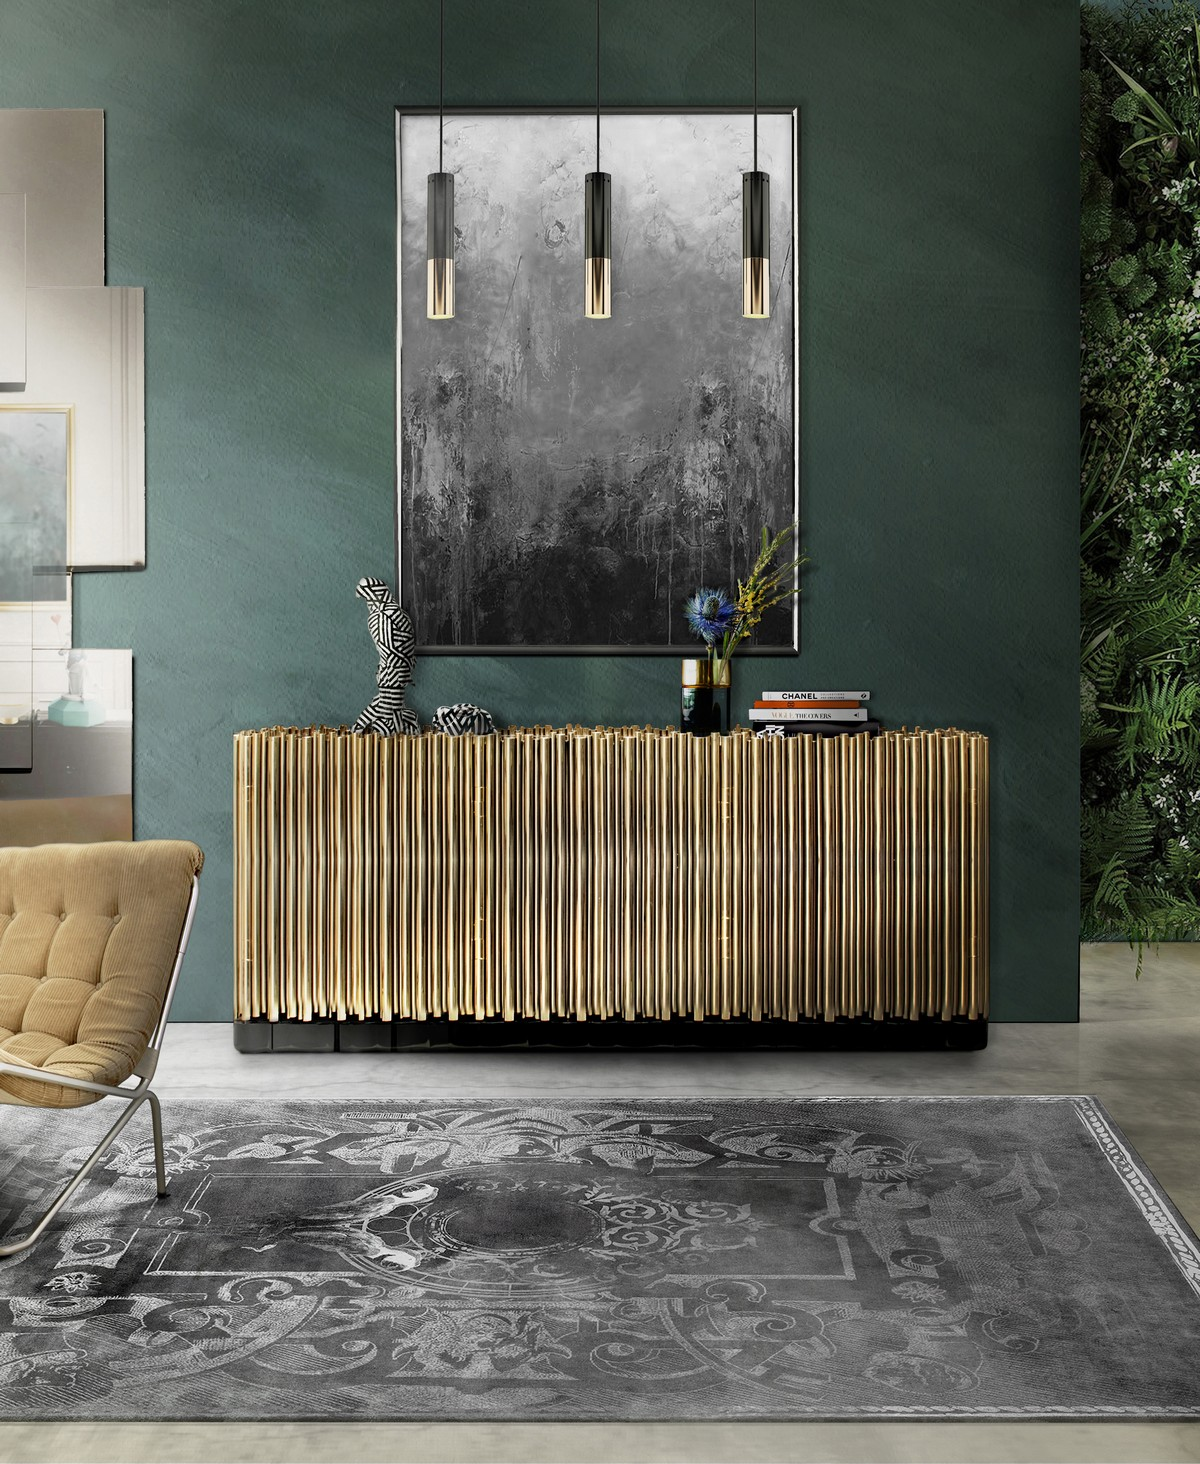 Inspiring Sideboard Ambiances You Will Love (Part III)